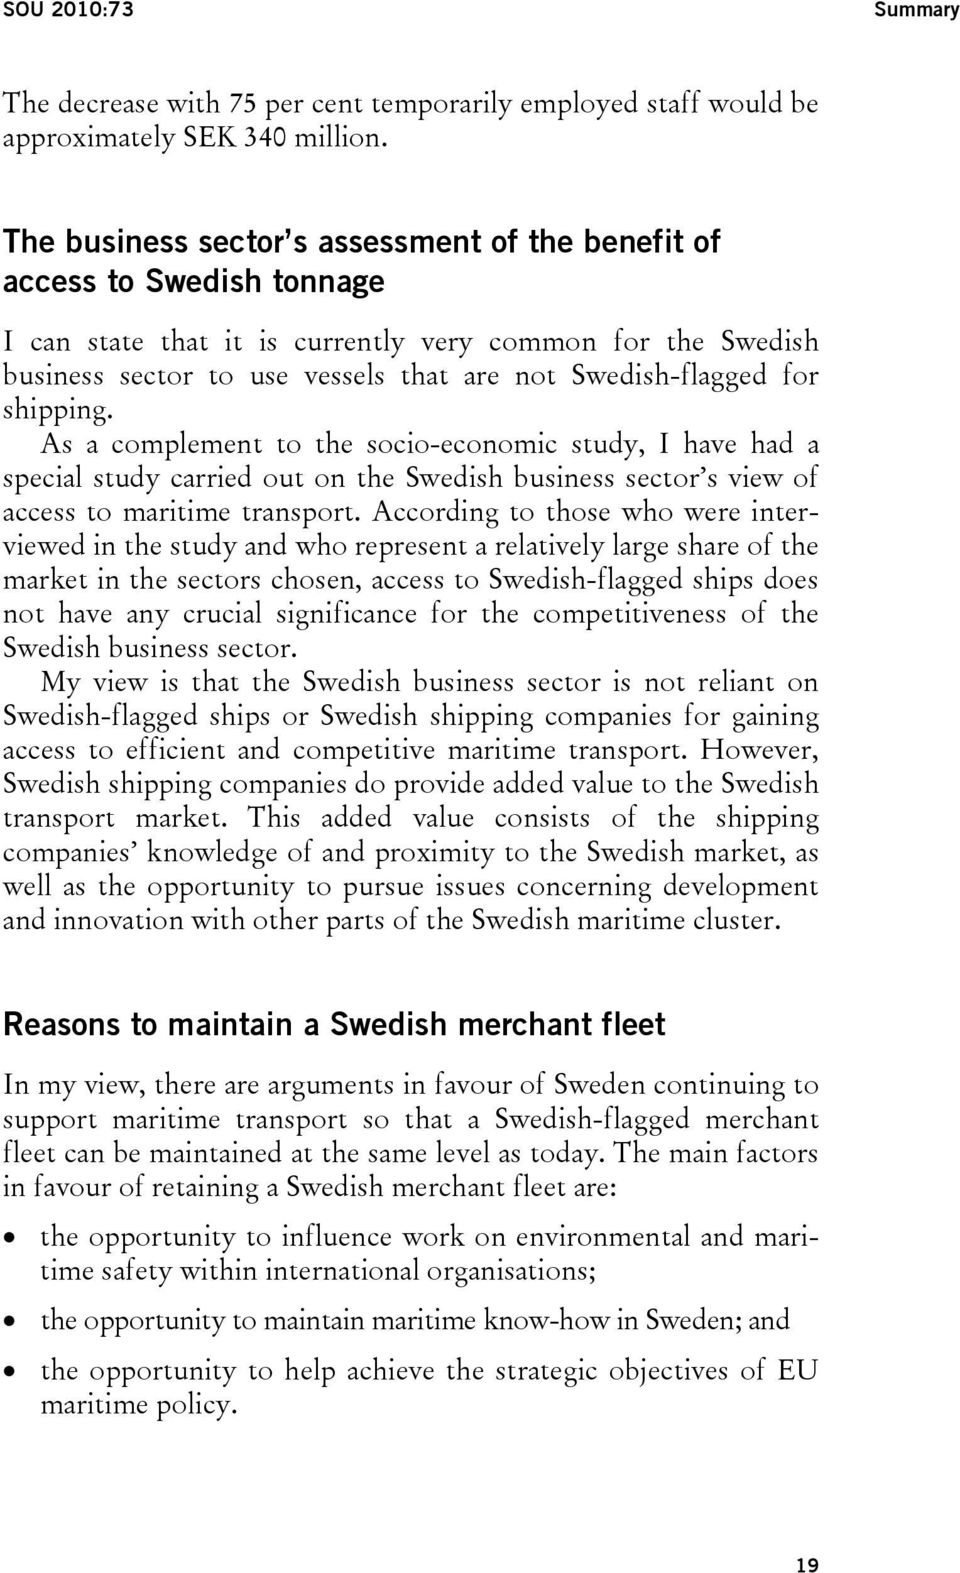 for shipping. As a complement to the socio-economic study, I have had a special study carried out on the Swedish business sector s view of access to maritime transport.